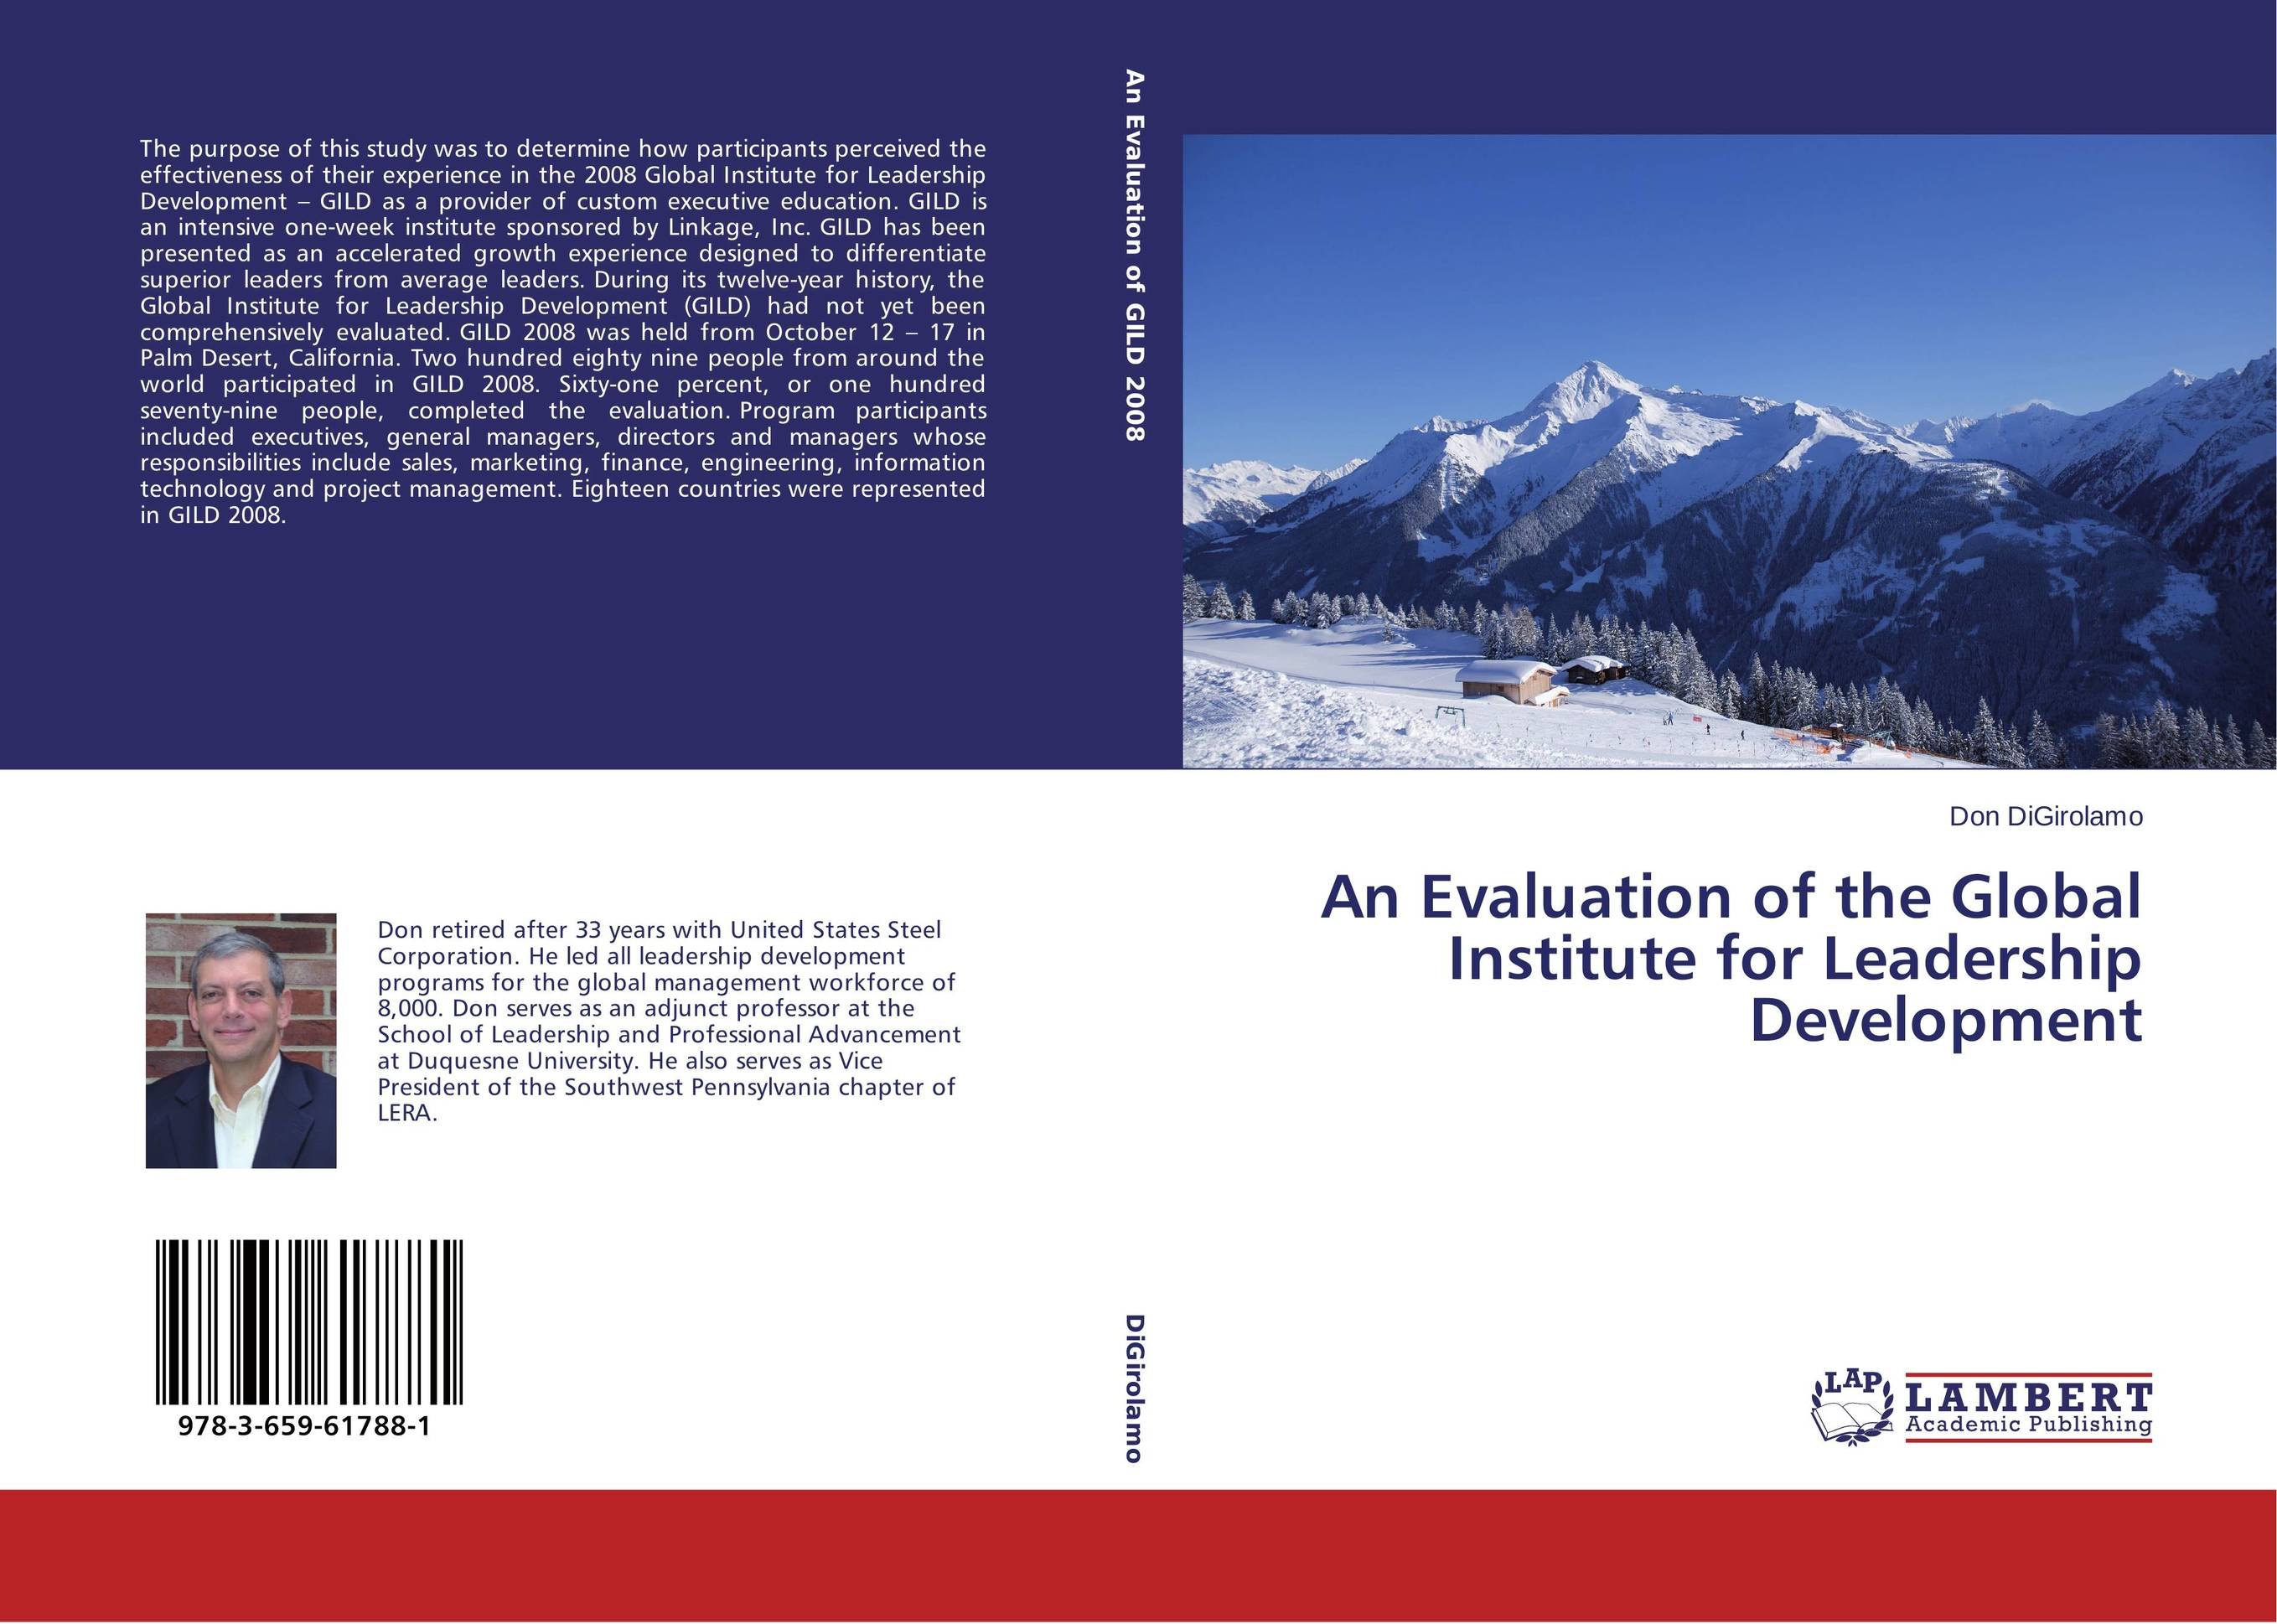 an evaluation of the competition between avantgo and palm inc in the isp market The role of arbitration in international ip dispute resolution - ebook download as pdf file (pdf), text file (txt) or read book online abstract: this dissertation focuses on intellectual property disputes with the aim of proposing ways to improve time and cost efficiencies in the dispute resolution process litigation and arbitration, the two major methods of binding resolution, are.